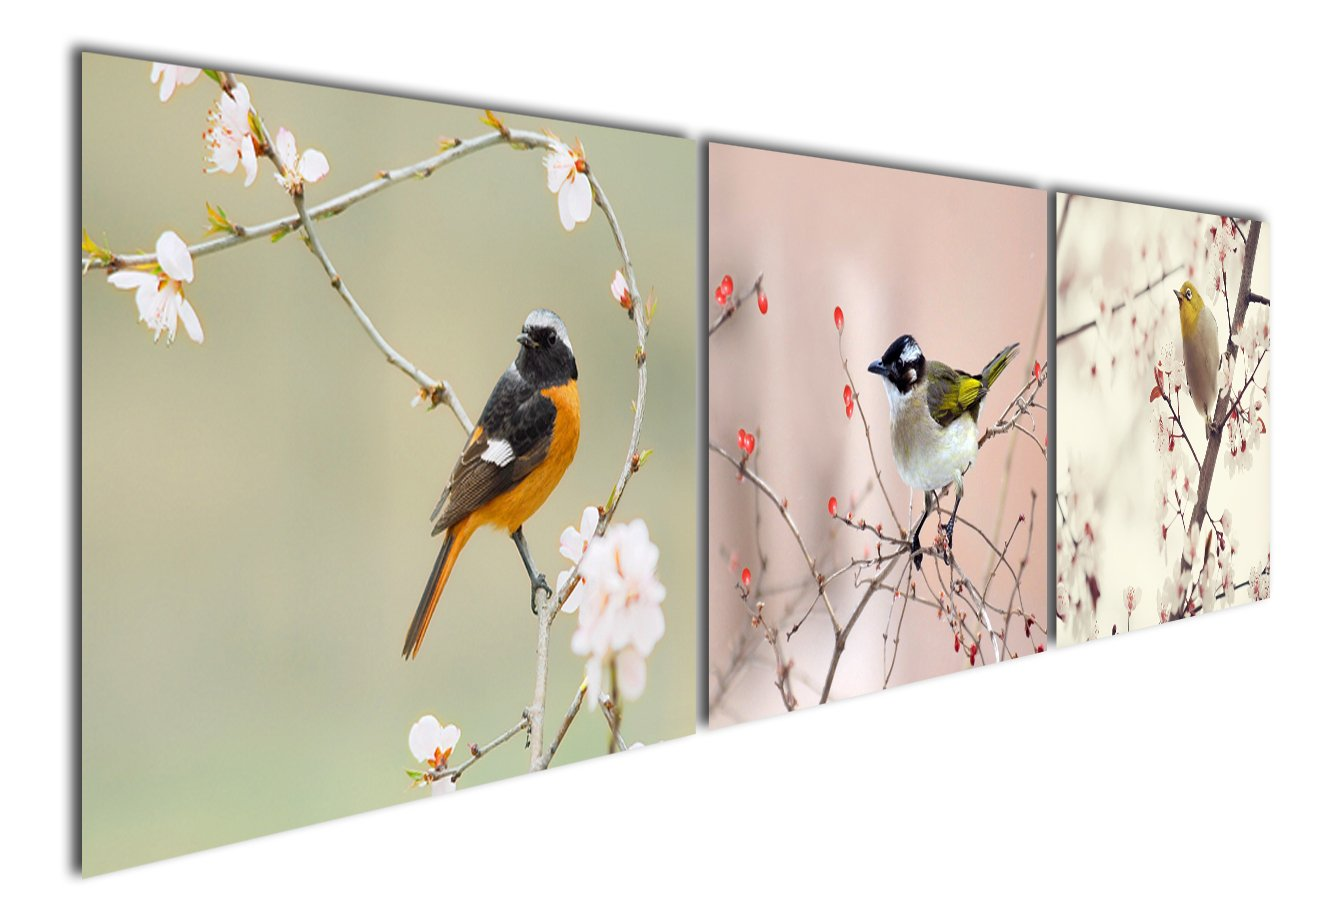 Gardenia Art - Animal World Series 17 Colorful Birds on Branch Modern Canvas Wall Art Paintings Animals Artwork for Bedroom Living Room Decoration,12x16 inch per piece, Stretched and Framed